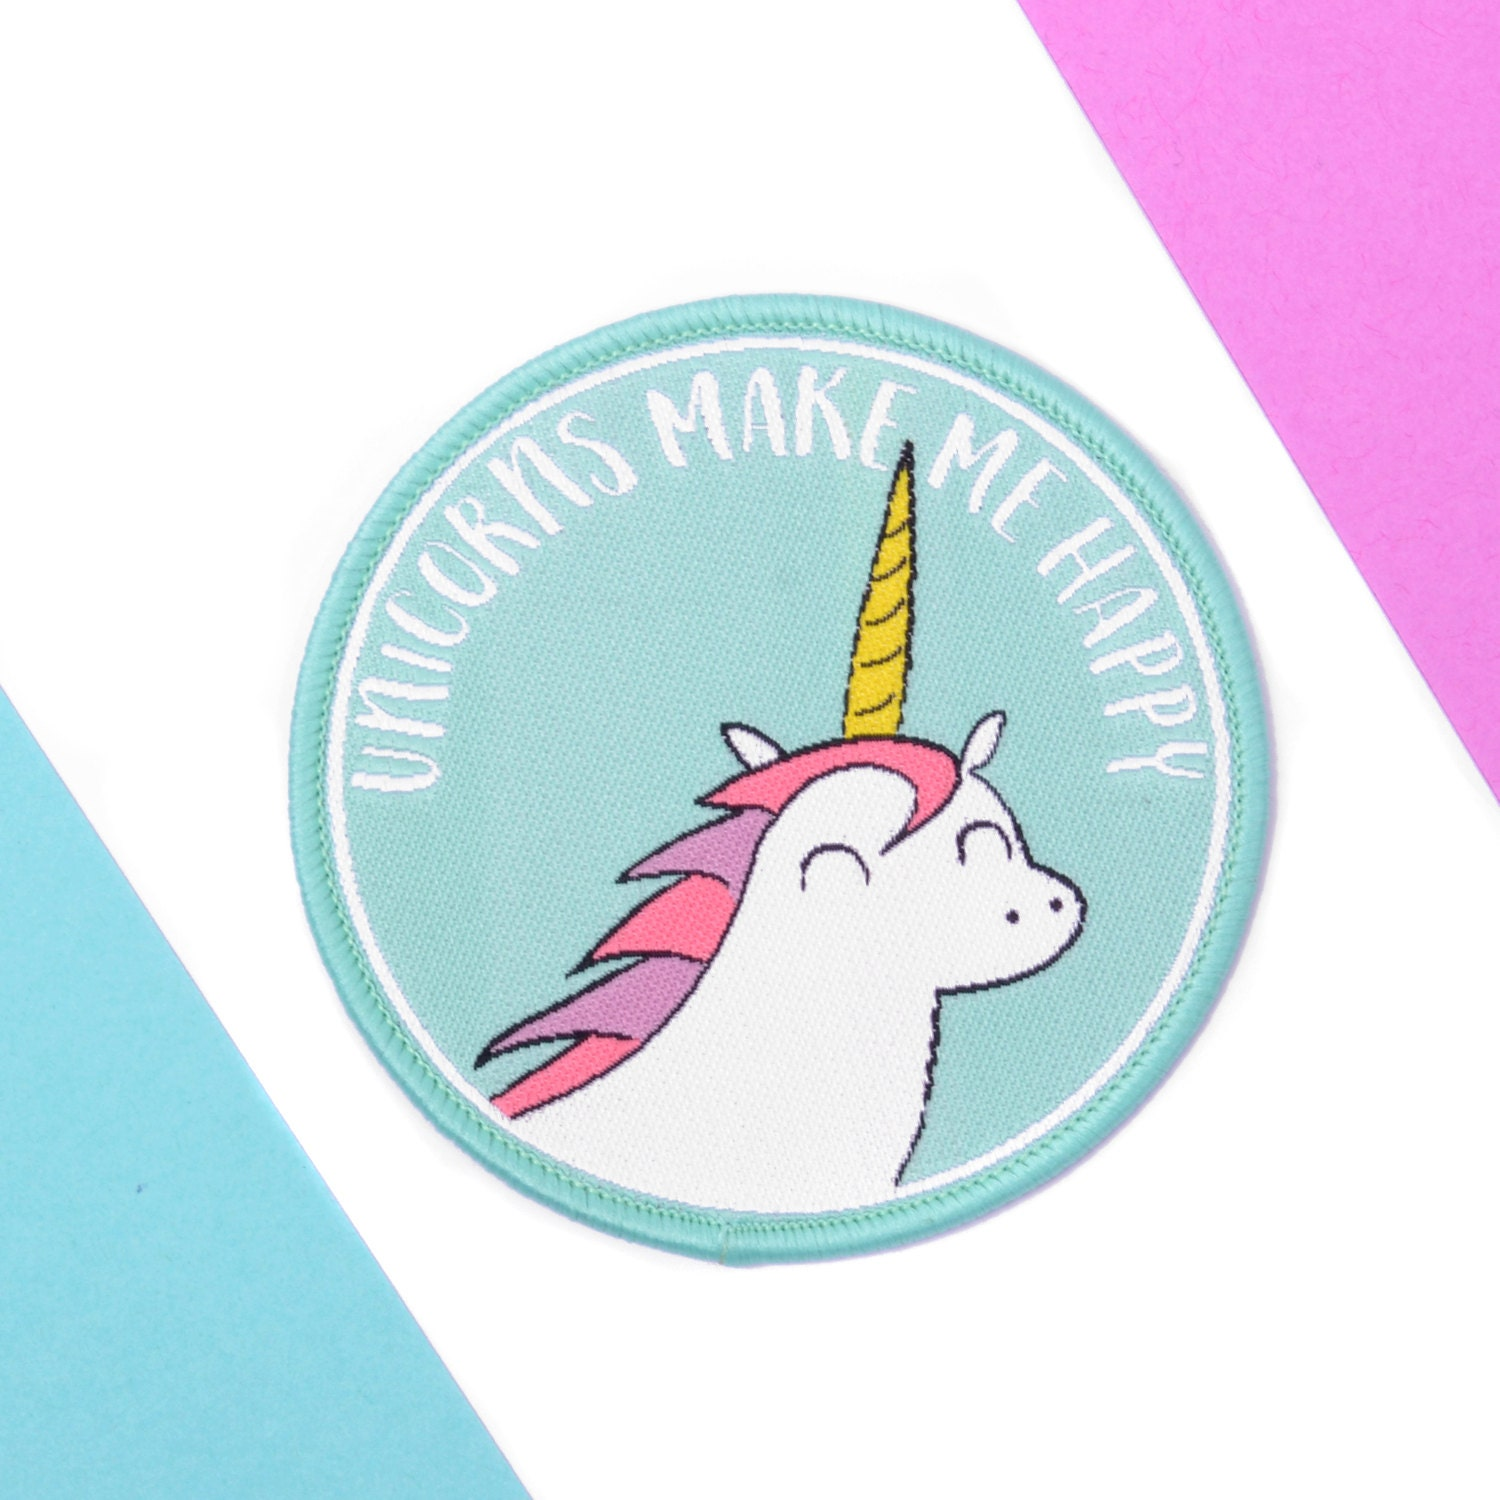 Patches  Unicorn Patch  Iron On Patch  Unicorn Gifts Unicorn Embroidered Patch Kawaii Patch Cute Unicorn Gifts Unicorn Party Bag Fillers